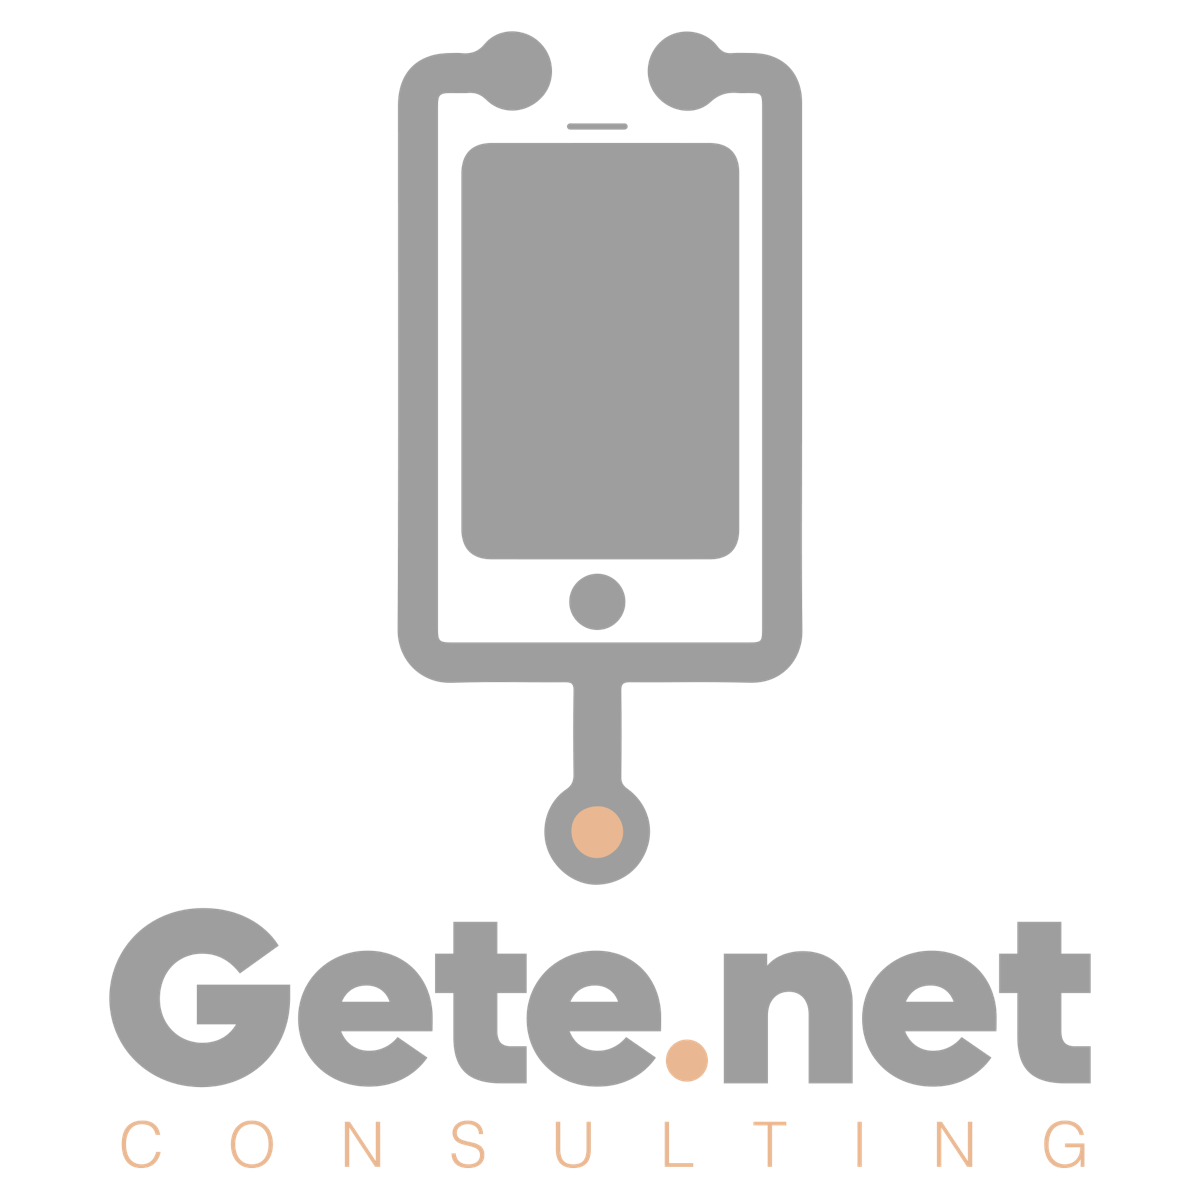 Gete net LOGO iPhone 2000x2000 72dpi